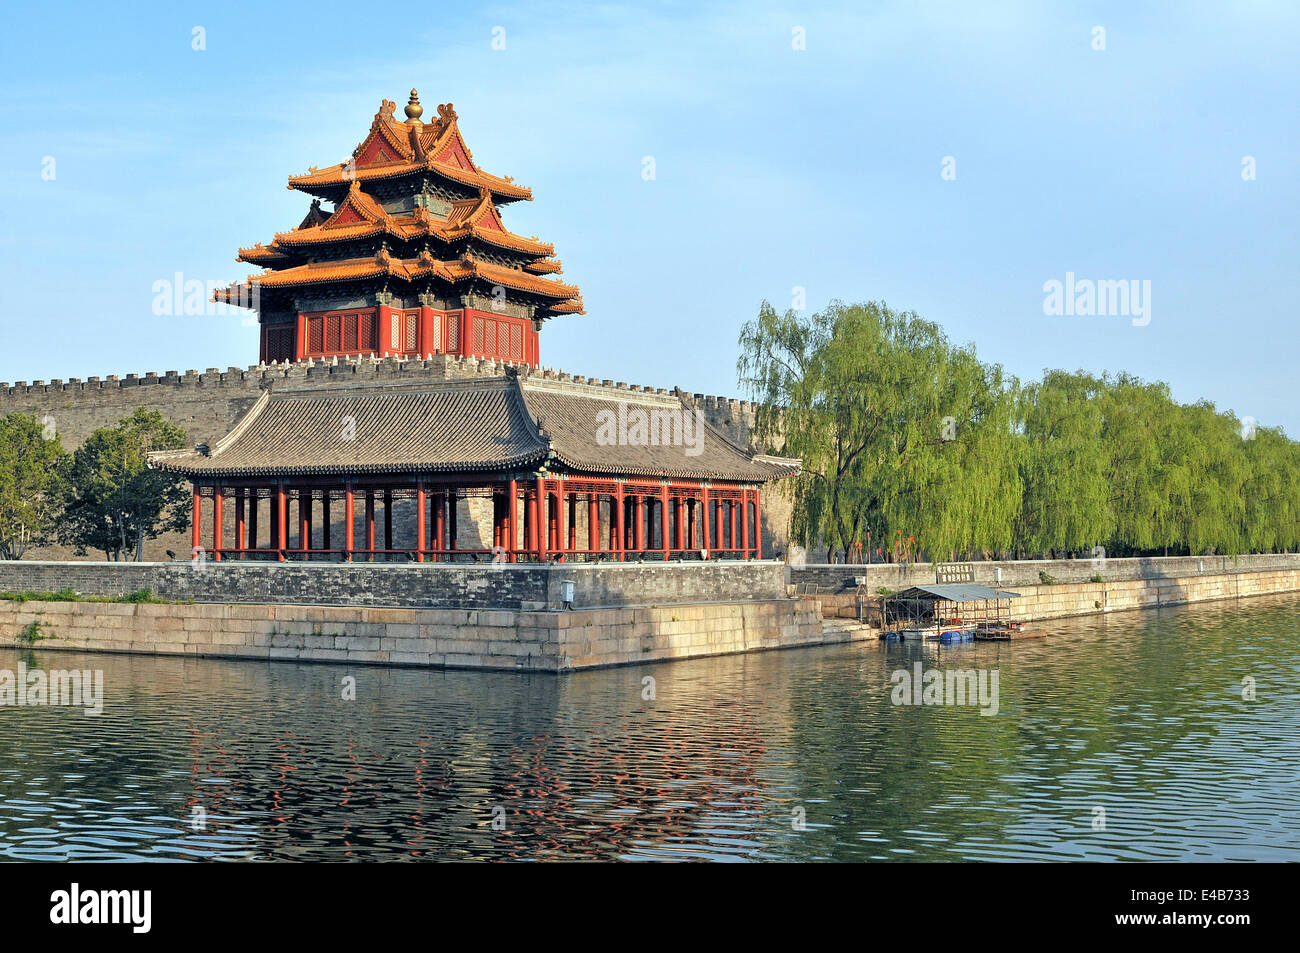 Guard Tower in the Forbidden City Beijing - Stock Image